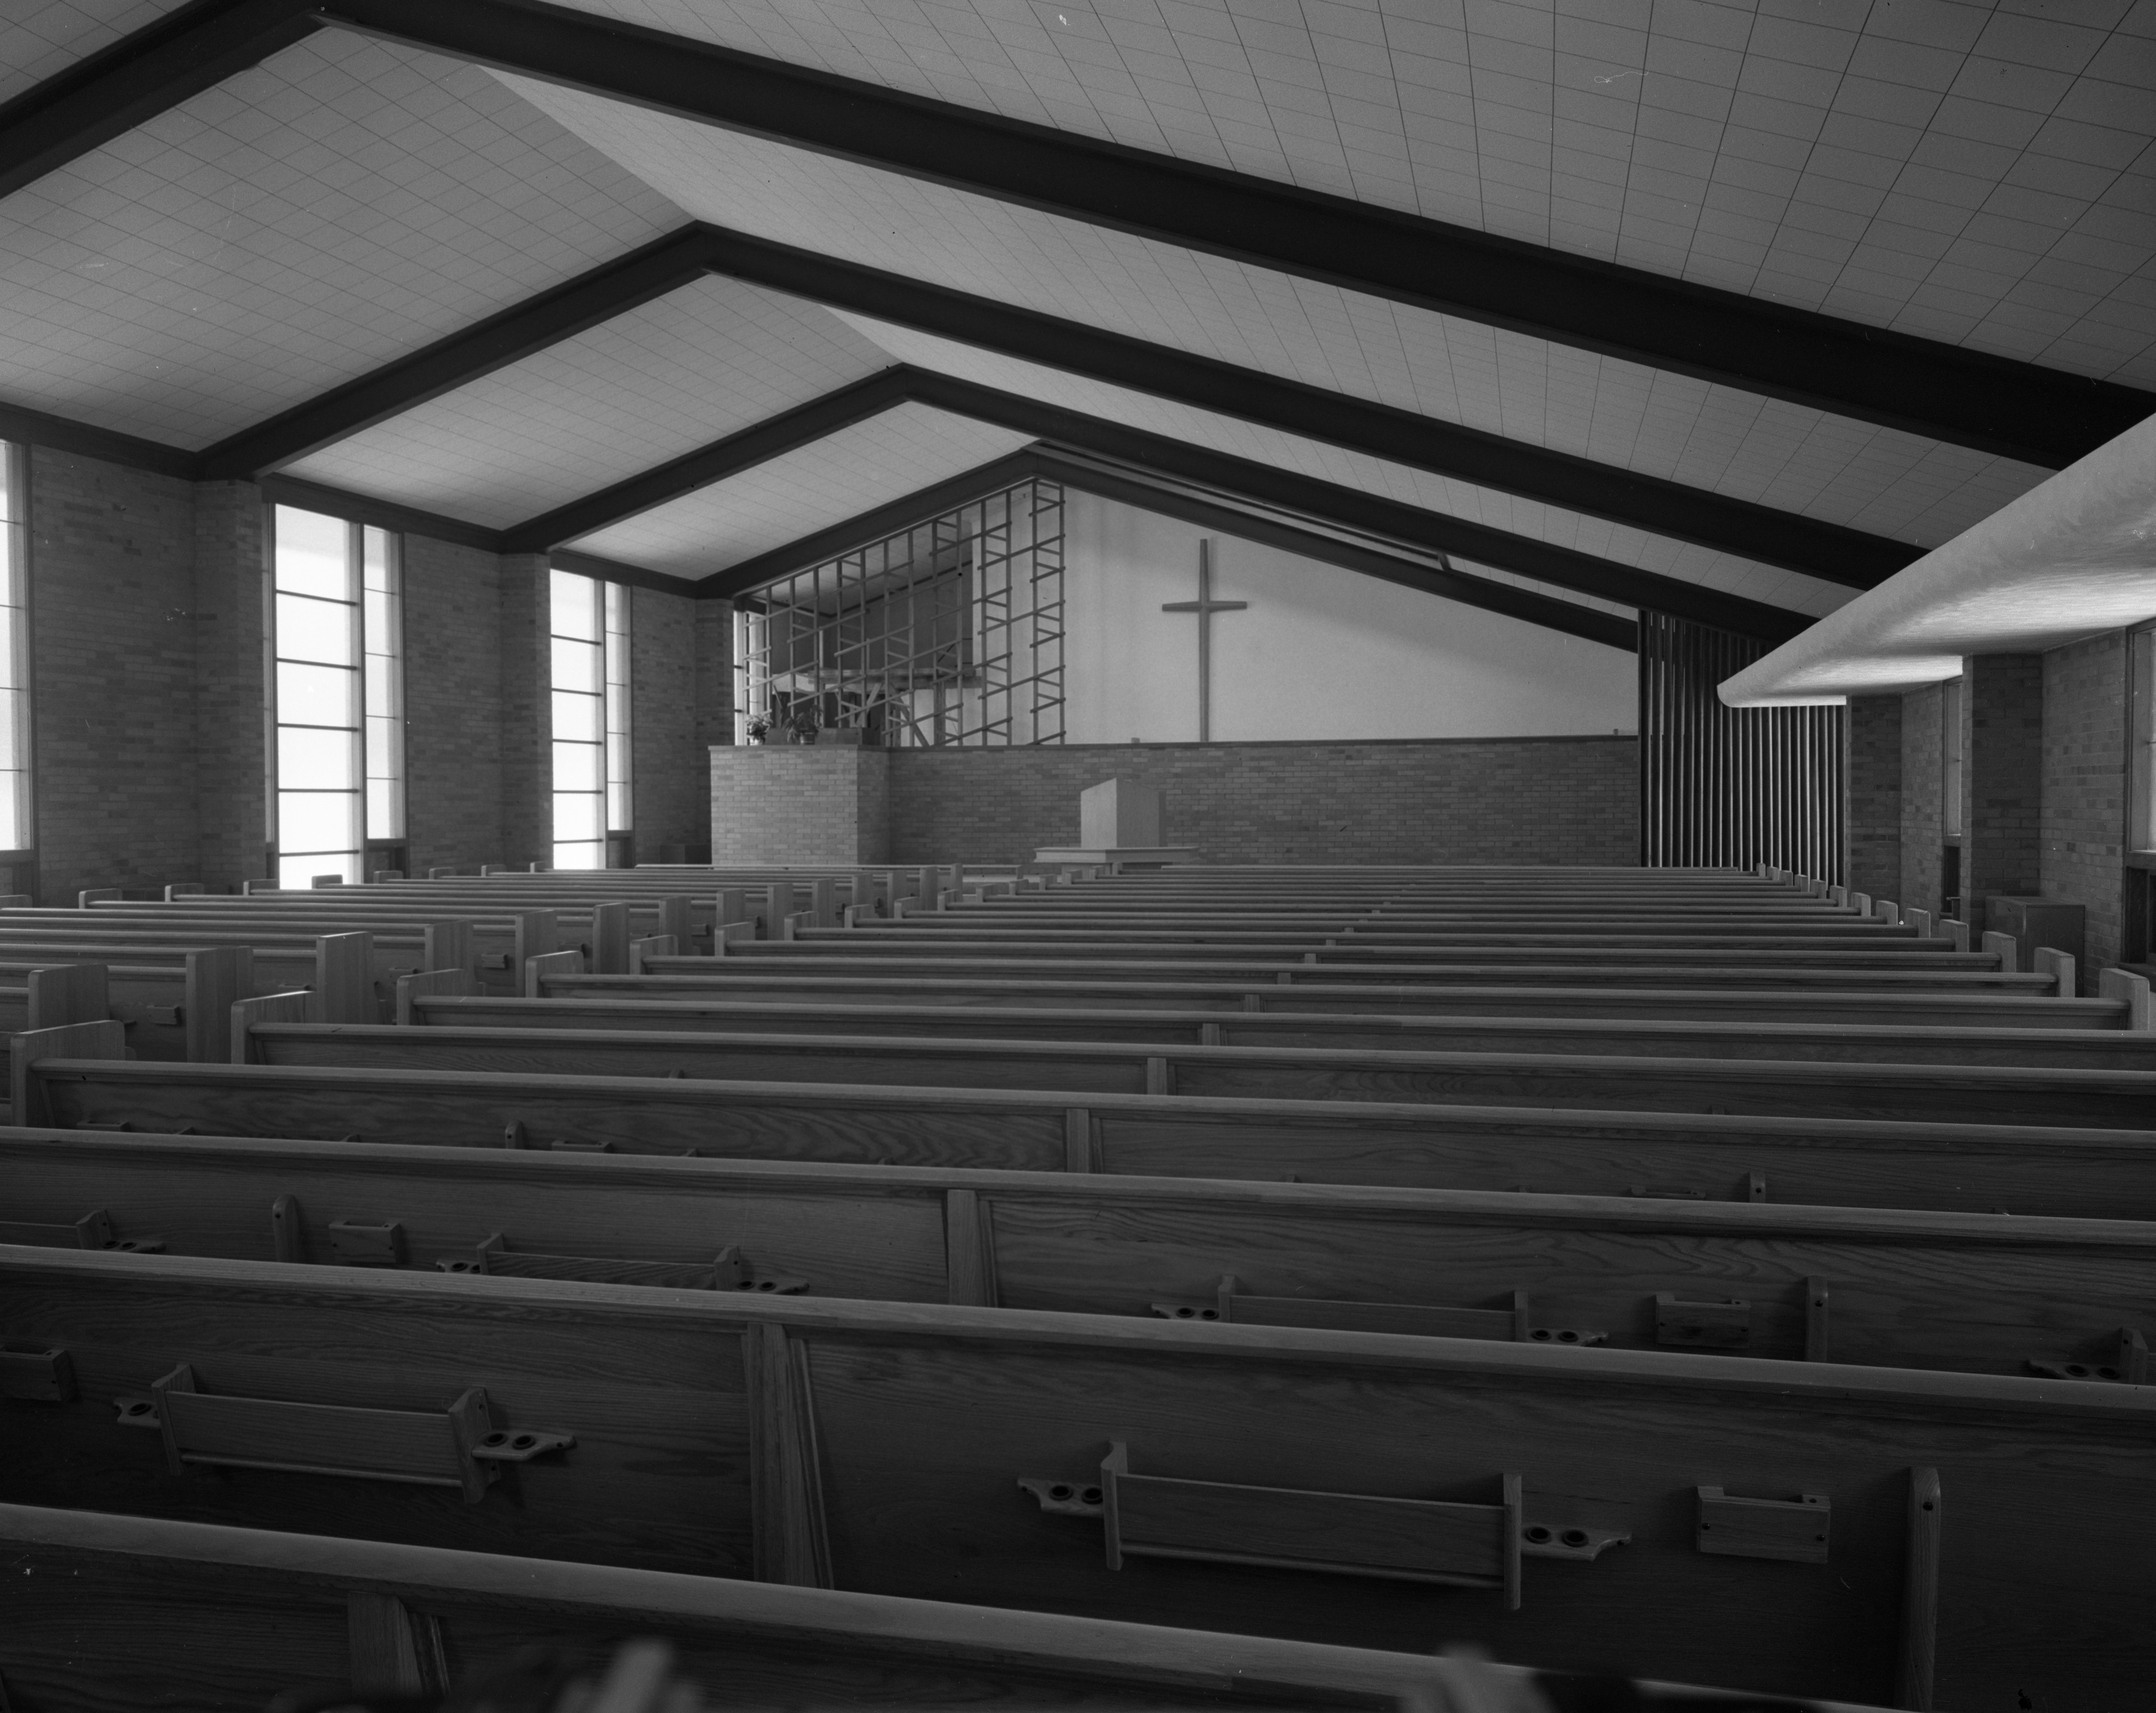 Interior of Evangelical United Brethren Church, March 1956 image